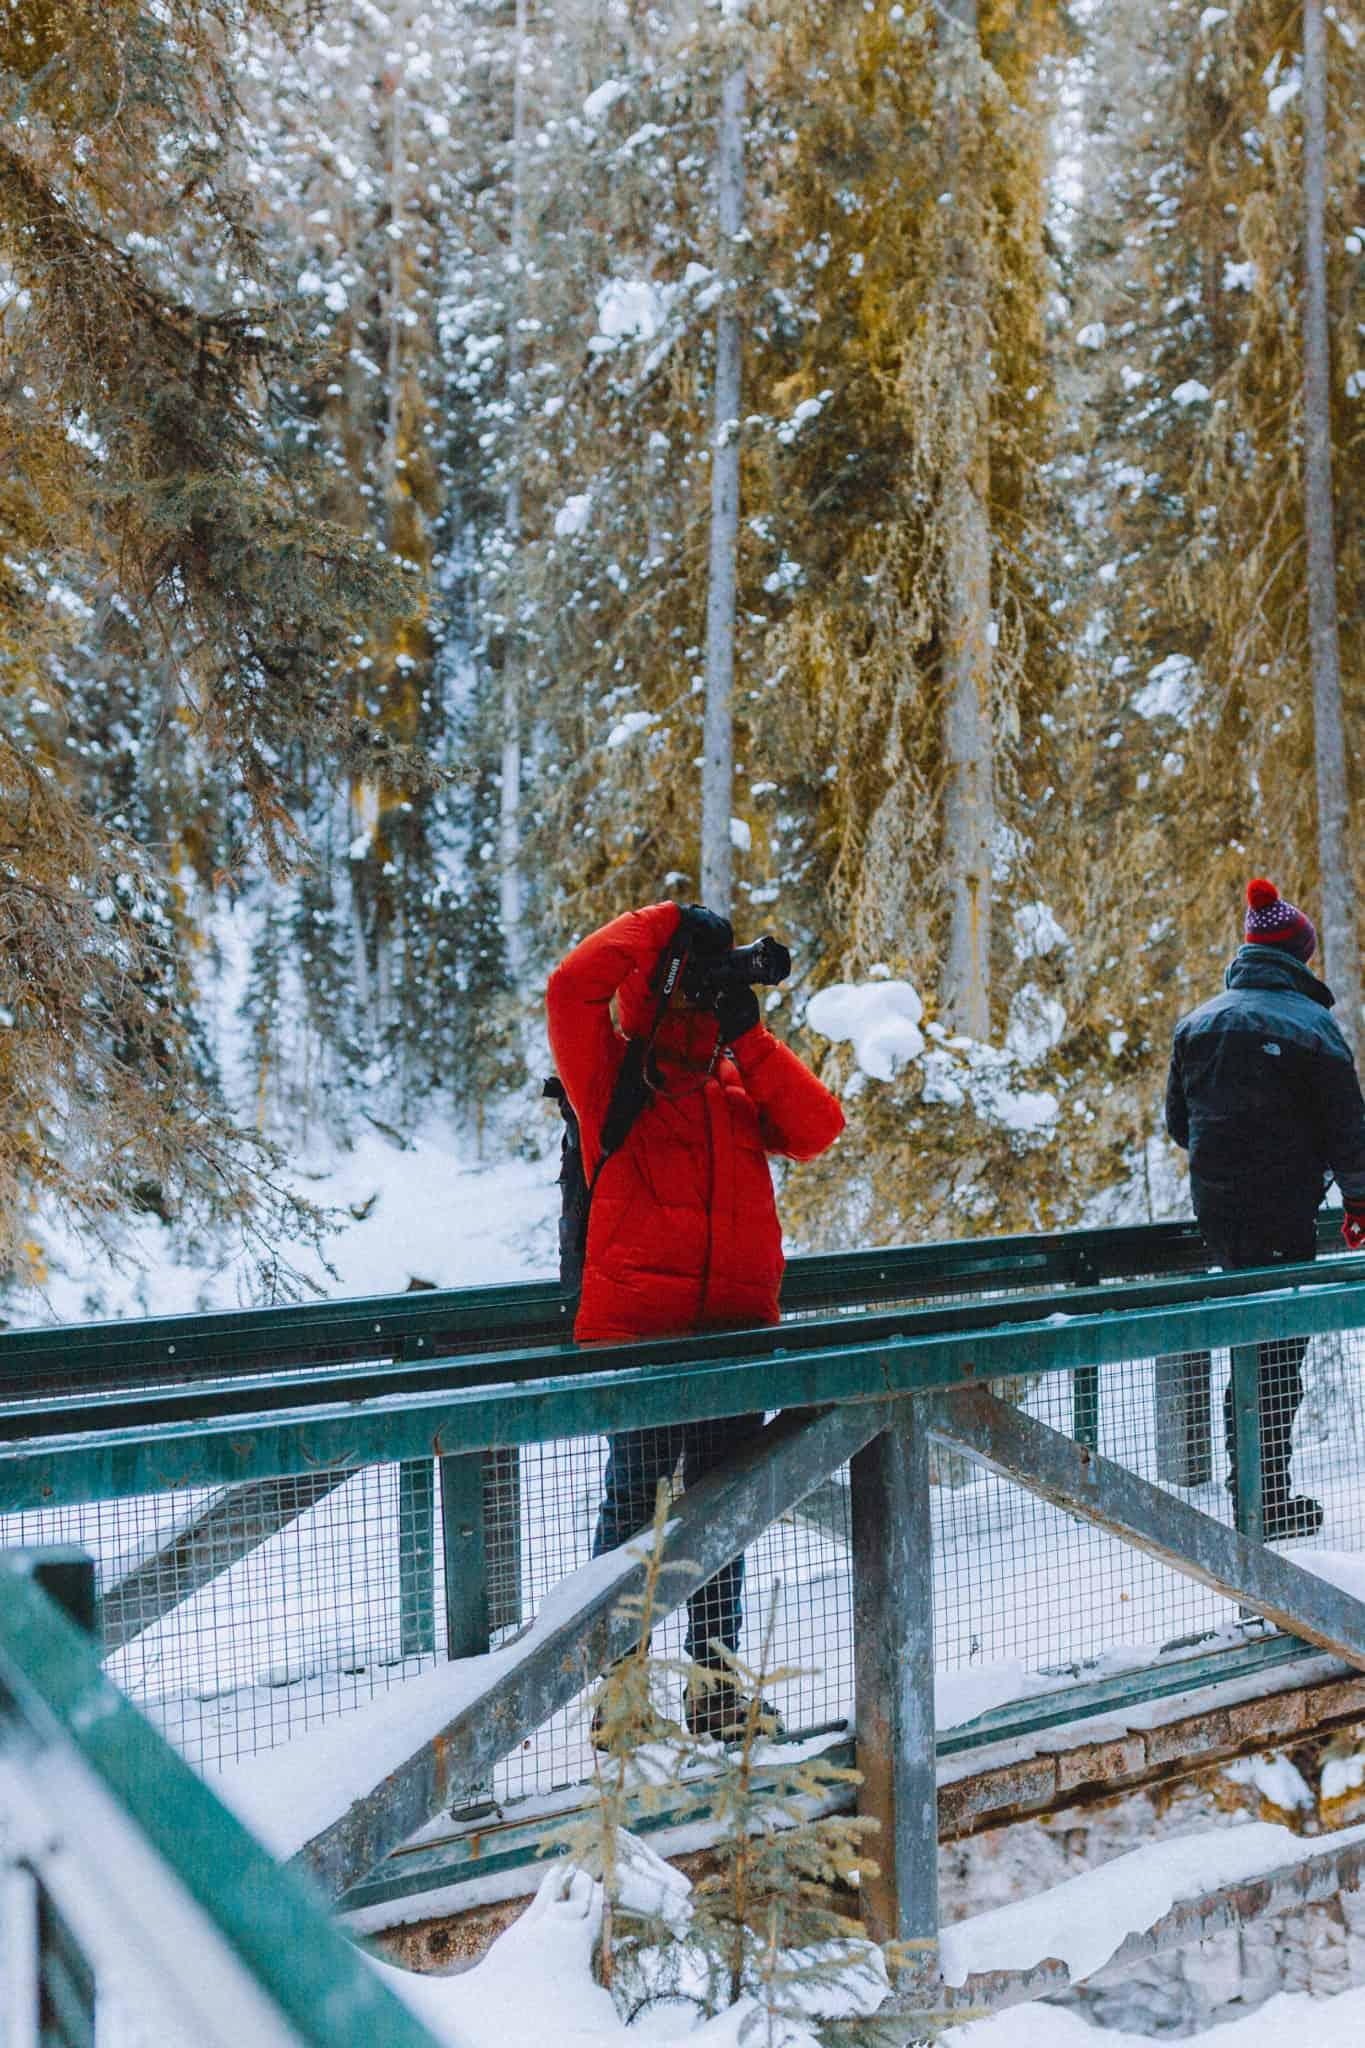 Berty Mandagie taking photos of Johnston Canyon in winter